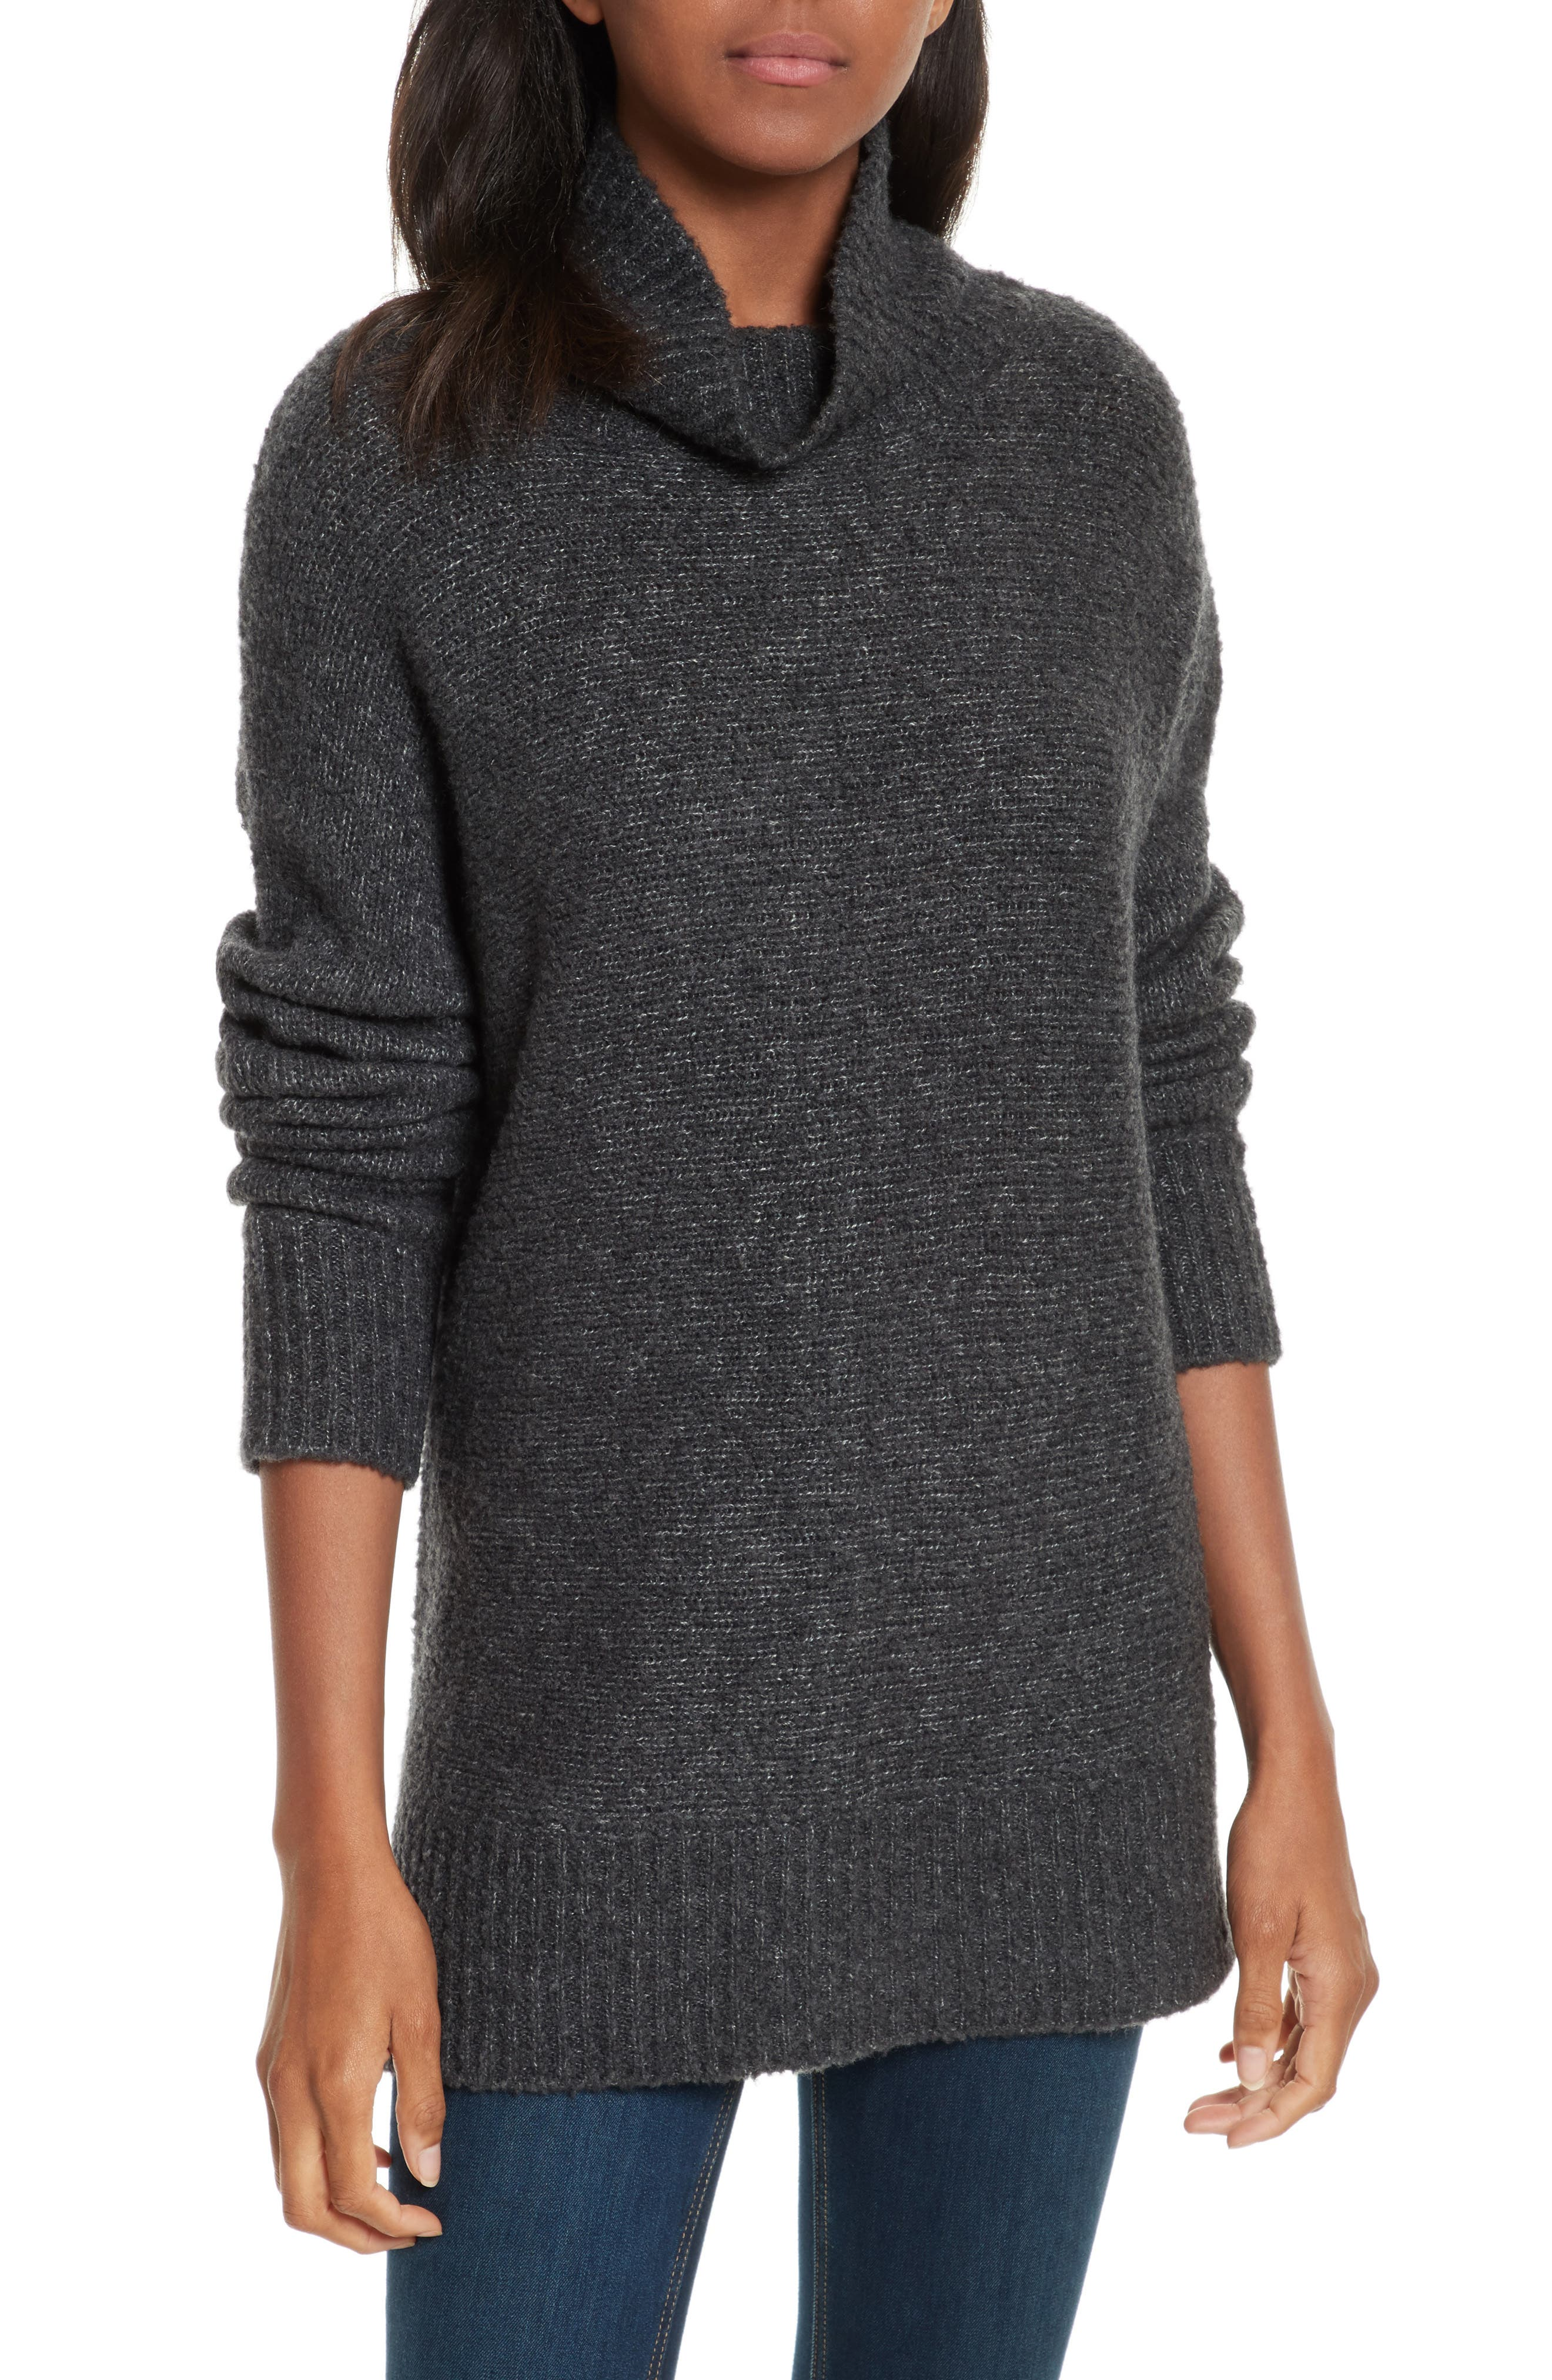 Joie Lehi Wool & Cashmere Sweater